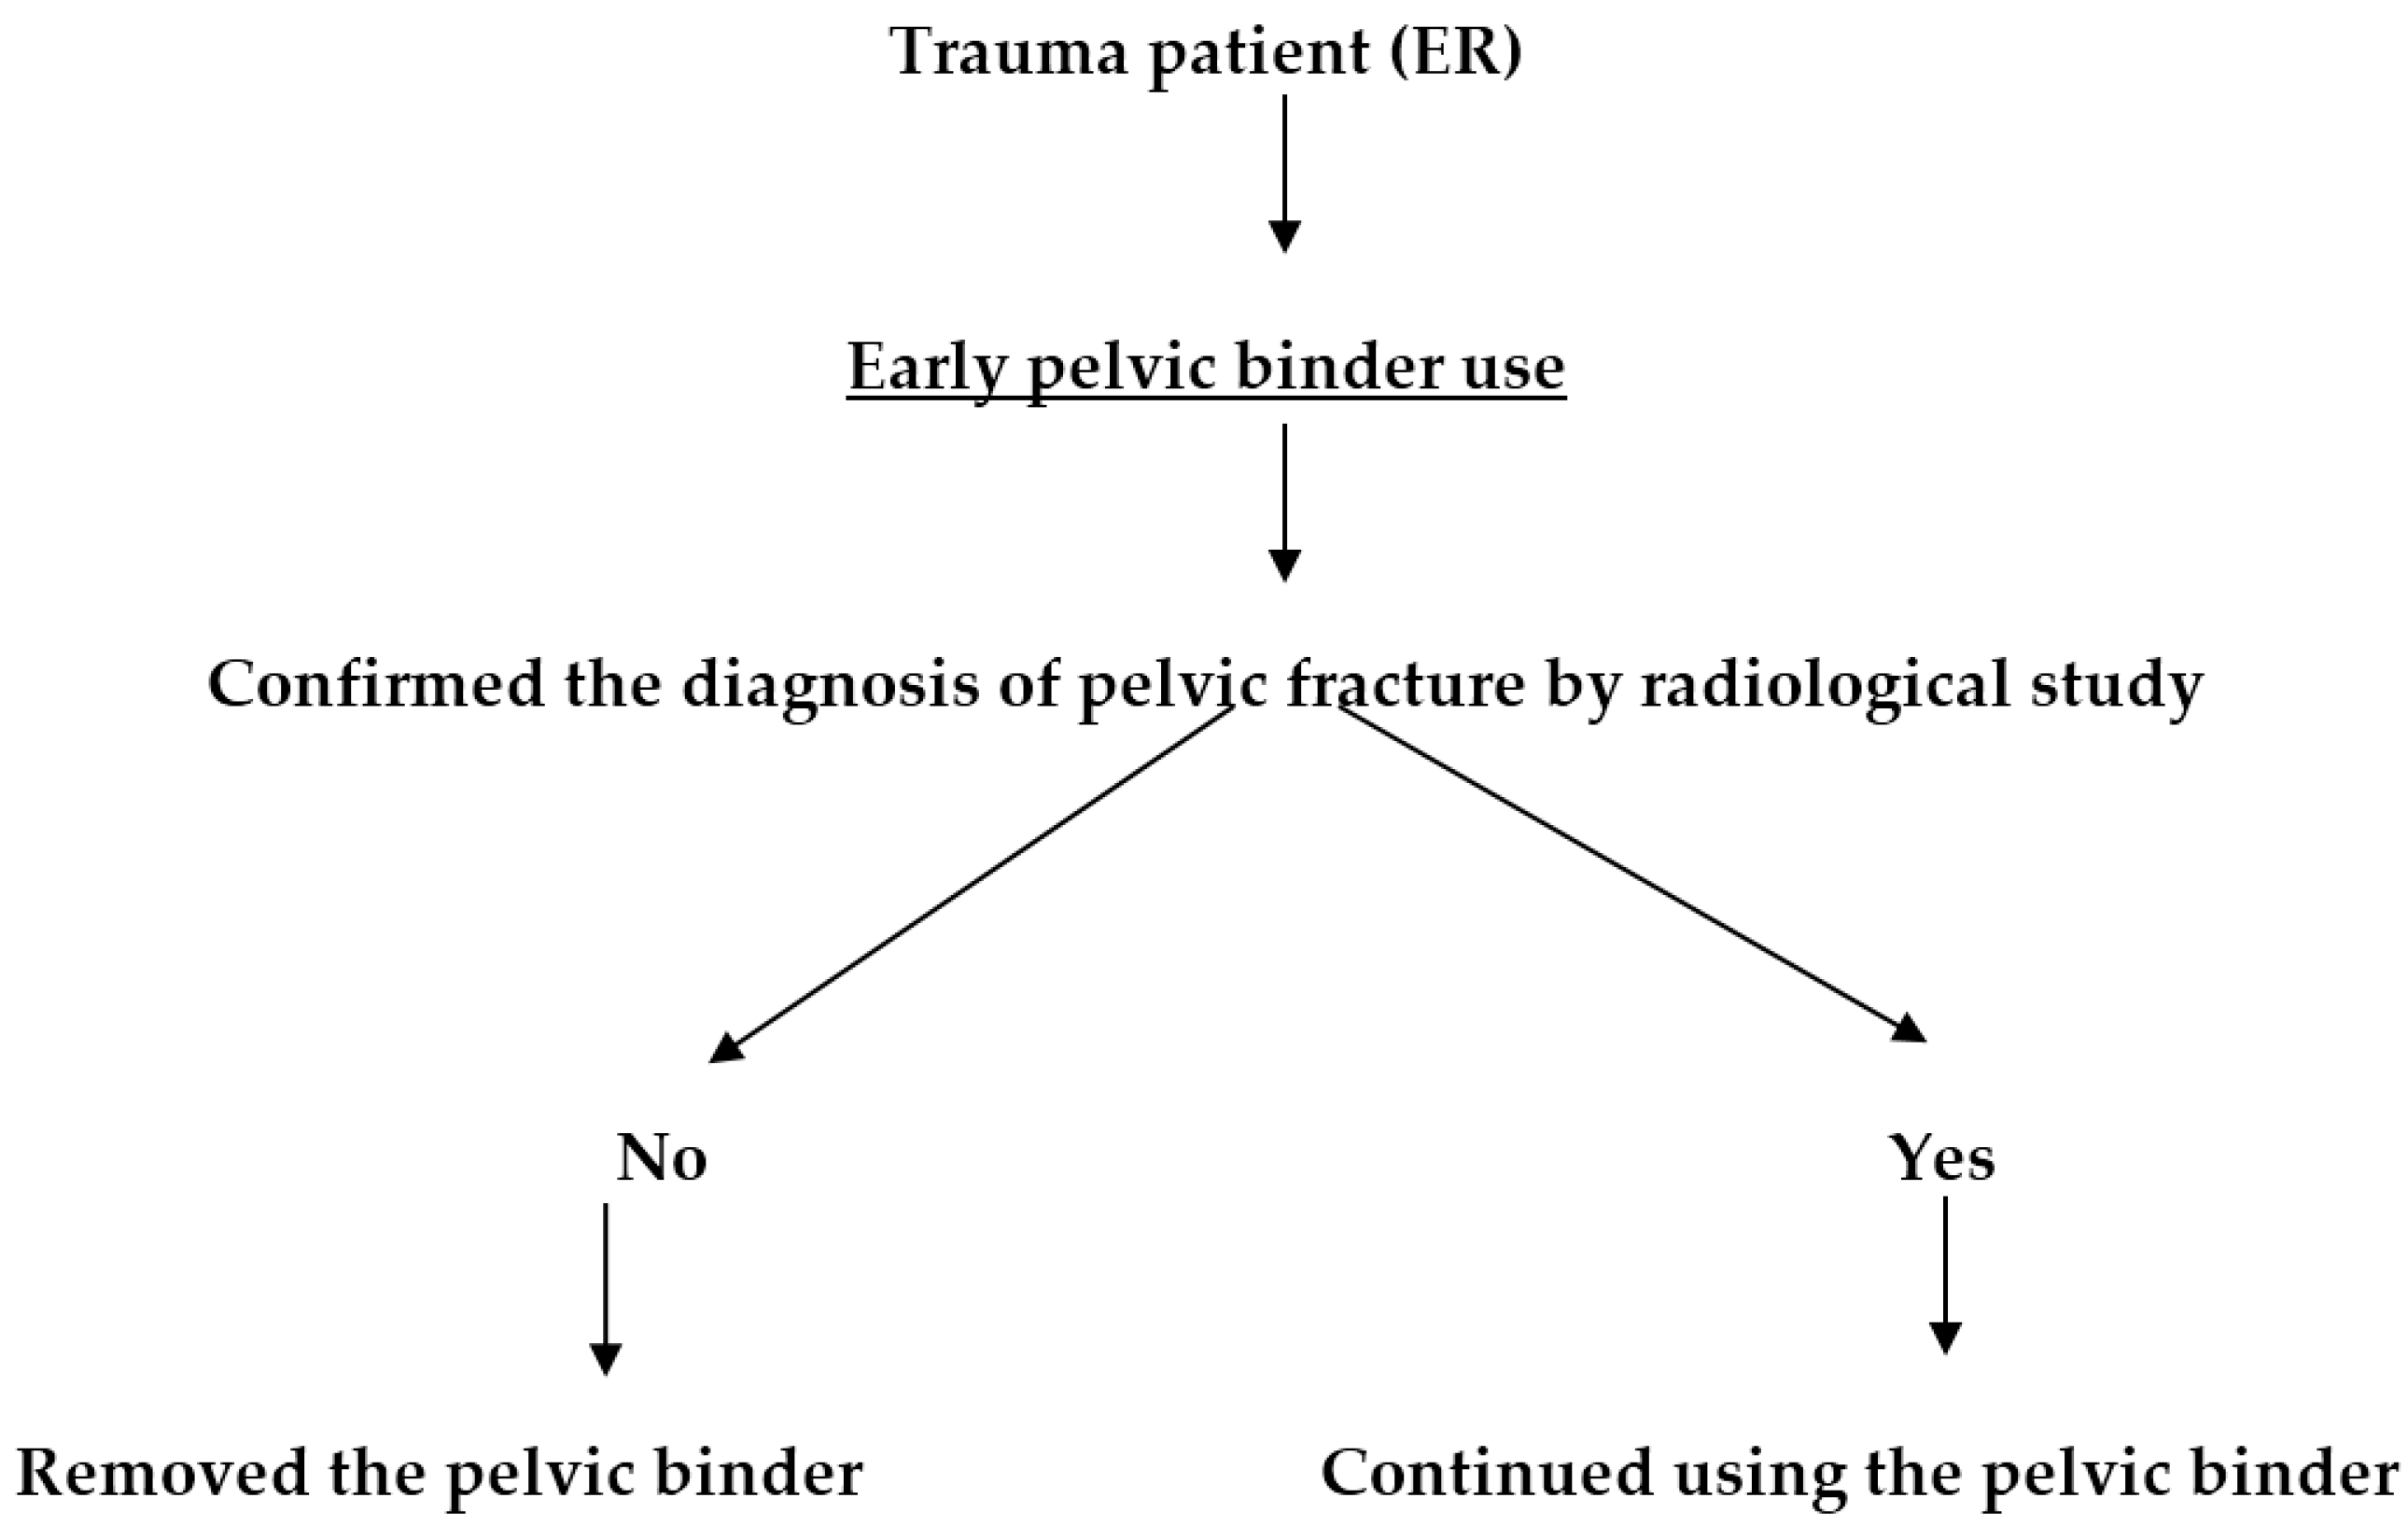 IJERPH | Free Full-Text | Effect of Early Pelvic Binder Use in the  Emergency Management of Suspected Pelvic Trauma: A Retrospective Cohort  Study | HTML